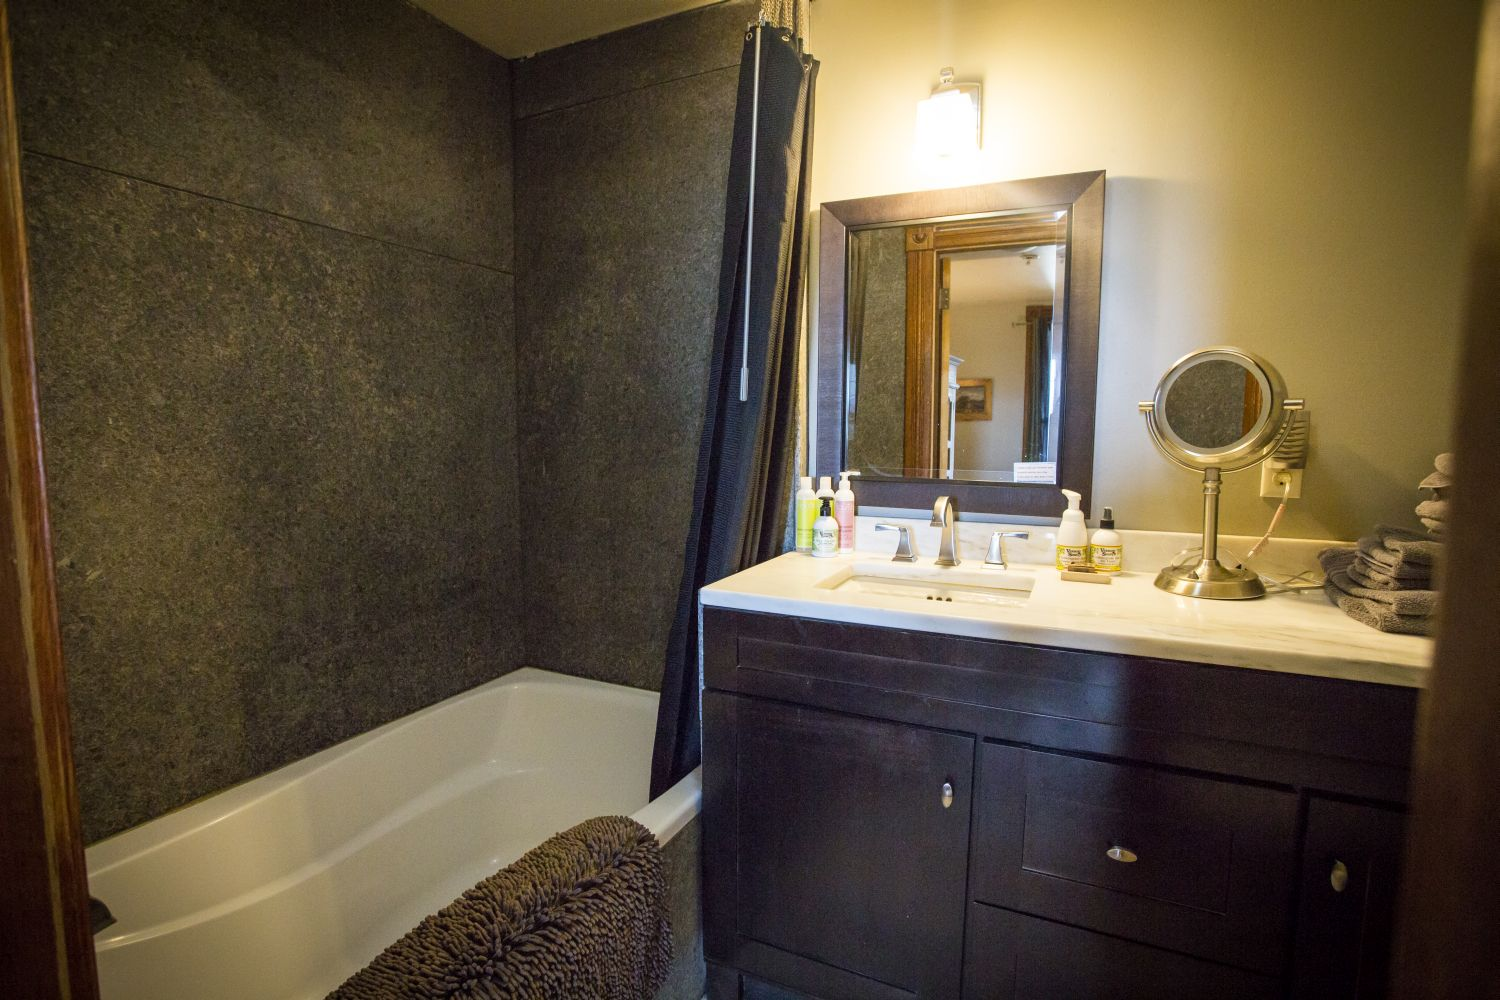 The master bathroom has an oversize tub, marble counter and floor